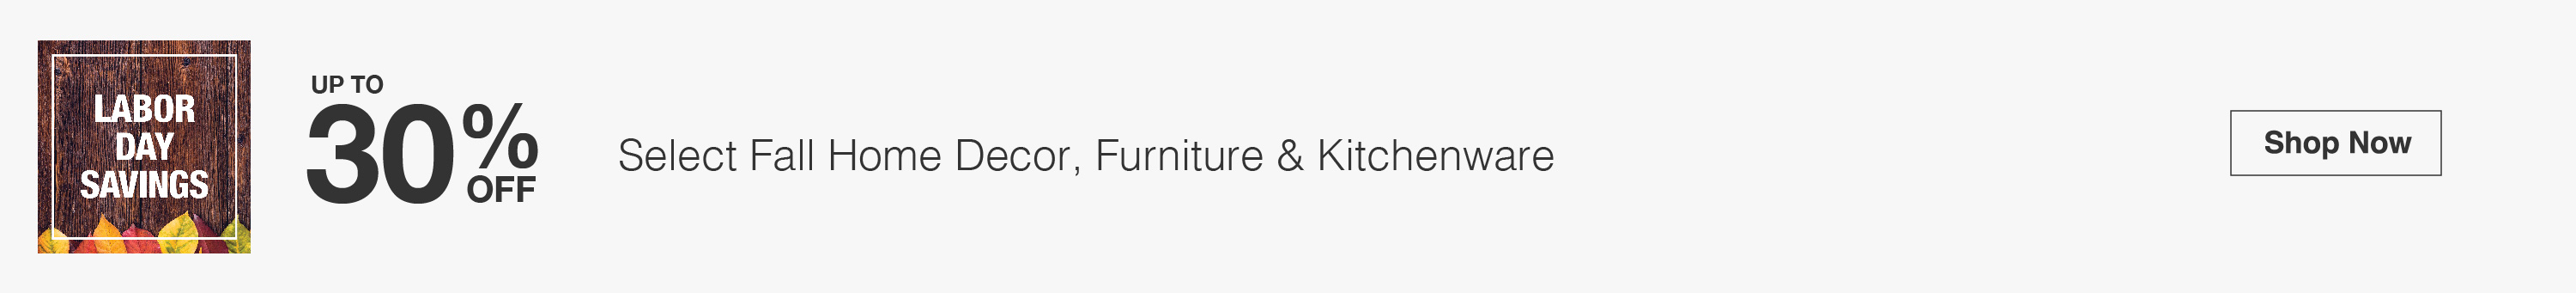 Labor Day Savings - Up to 30% Off Select Fall Home Decor, Furniture & Kitchenware